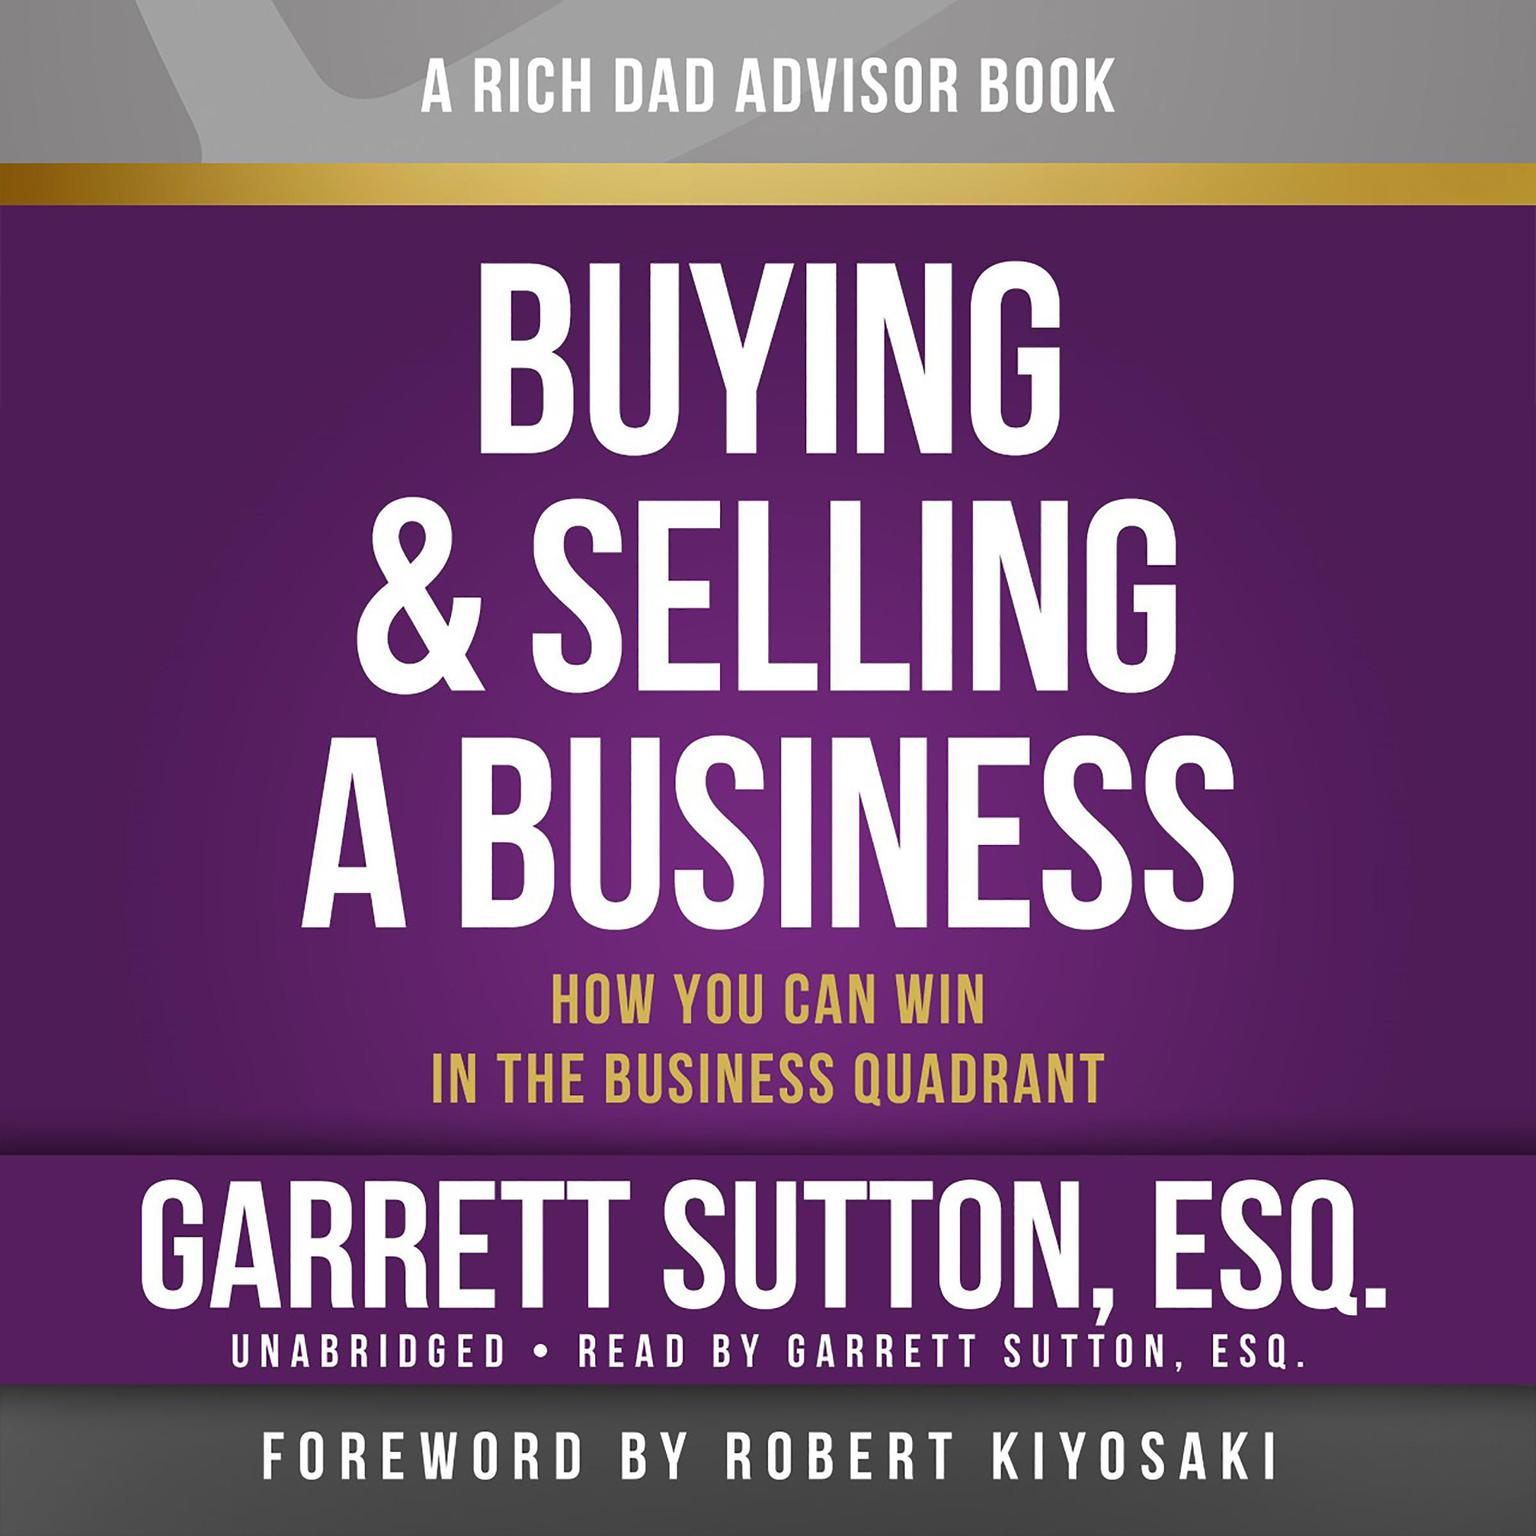 Printable Rich Dad Advisors: Buying and Selling a Business: How You Can Win in the Business Quadrant Audiobook Cover Art